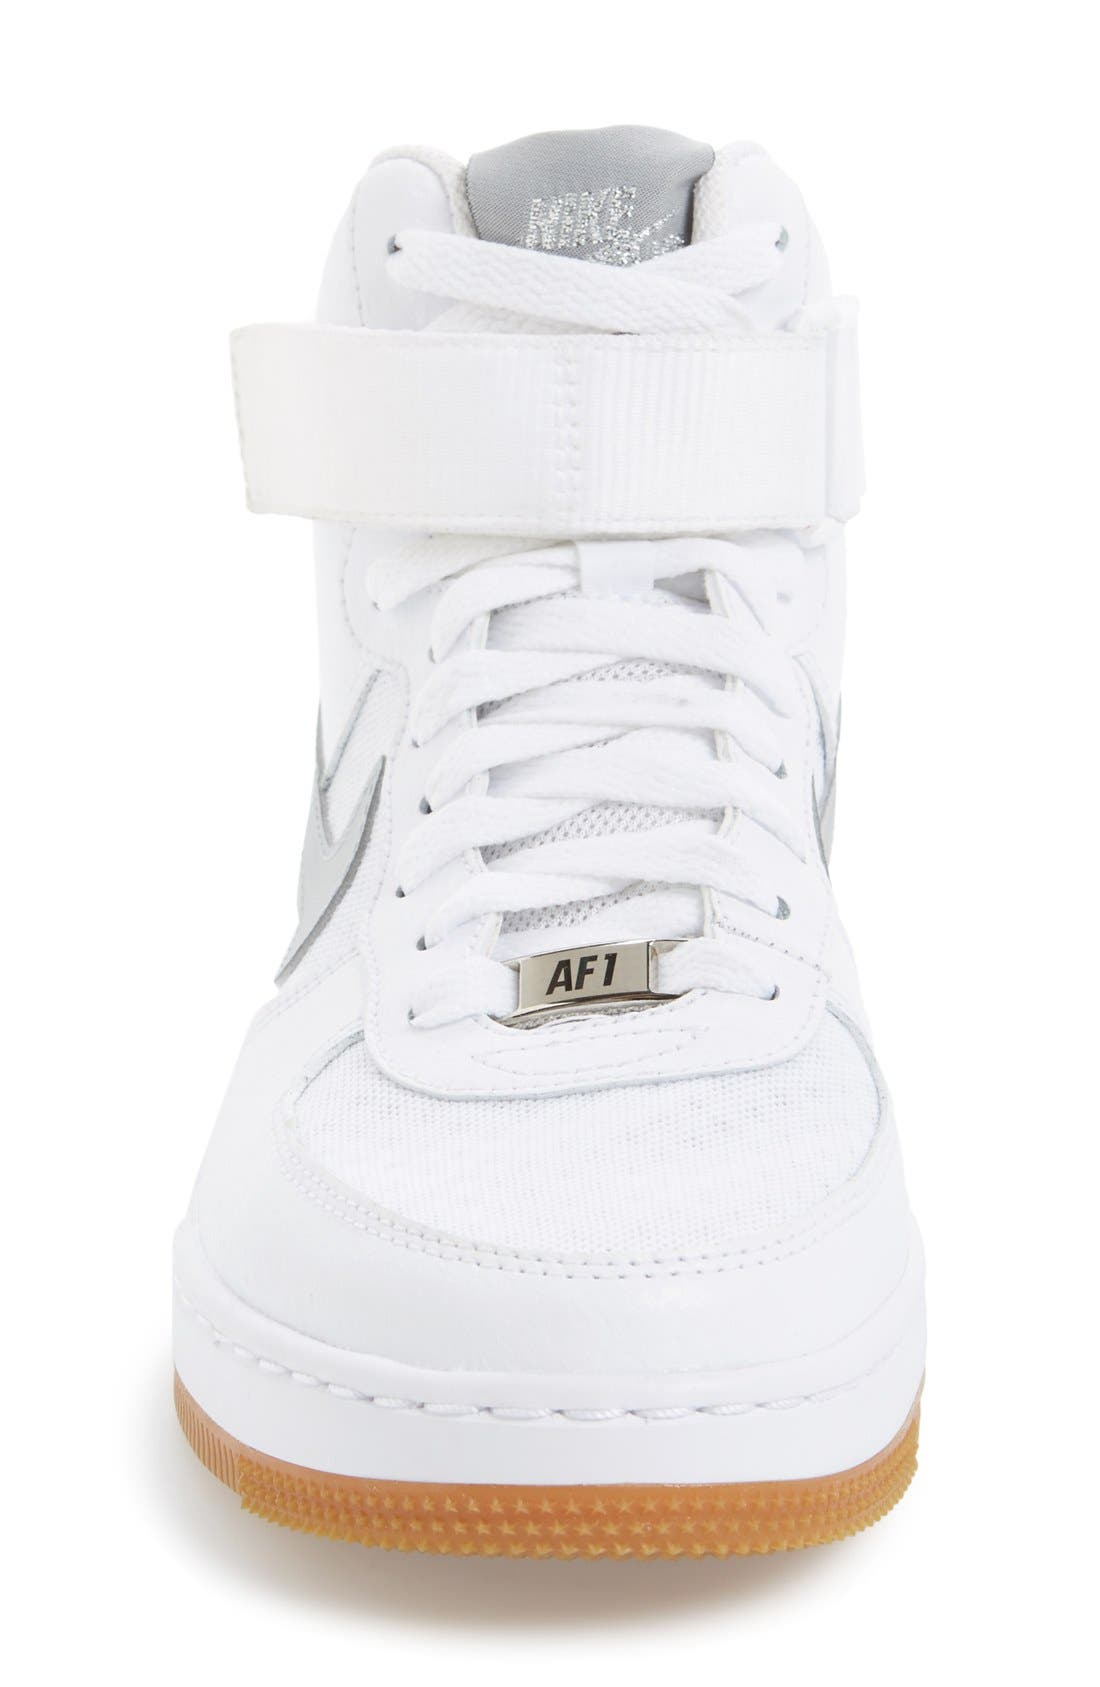 Alternate Image 3  - Nike 'AF-1 Ultra Force Mid' High Top Sneaker (Women)